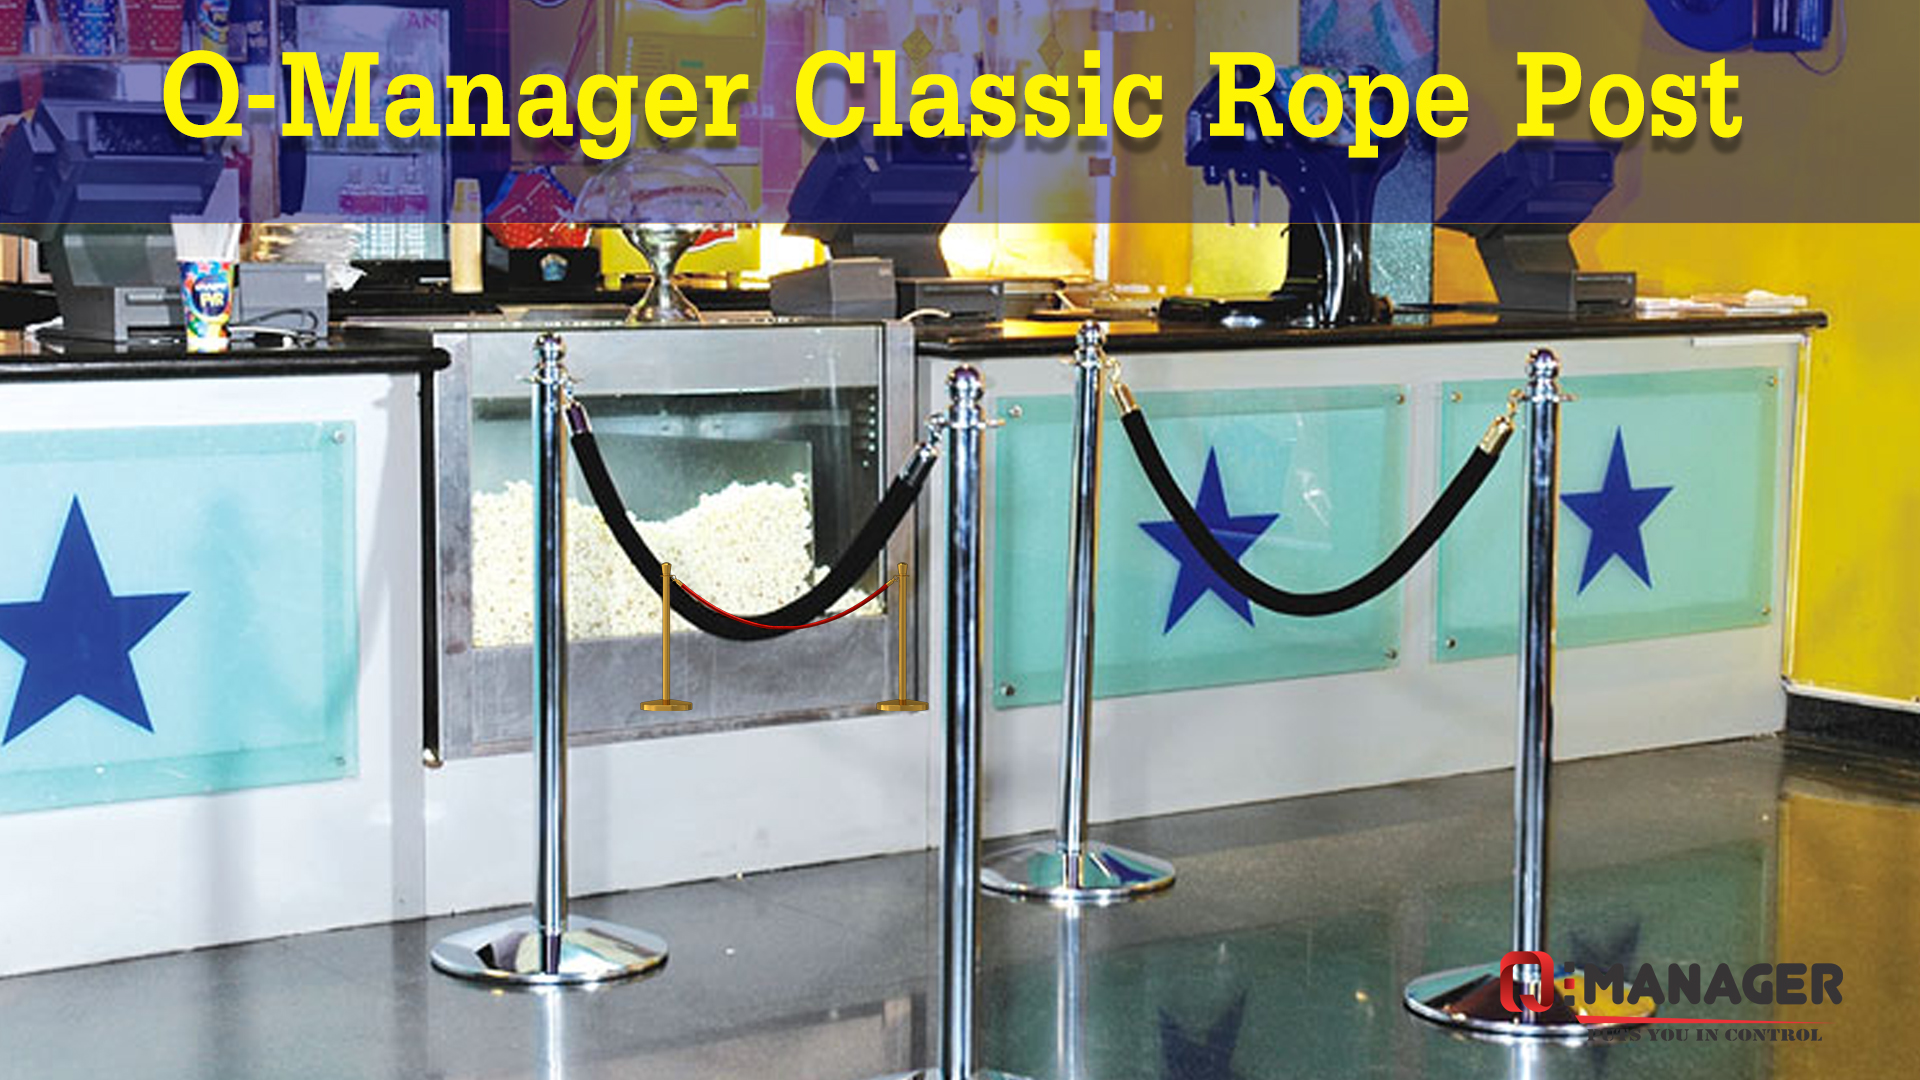 Q-Manager Classic Rope Post